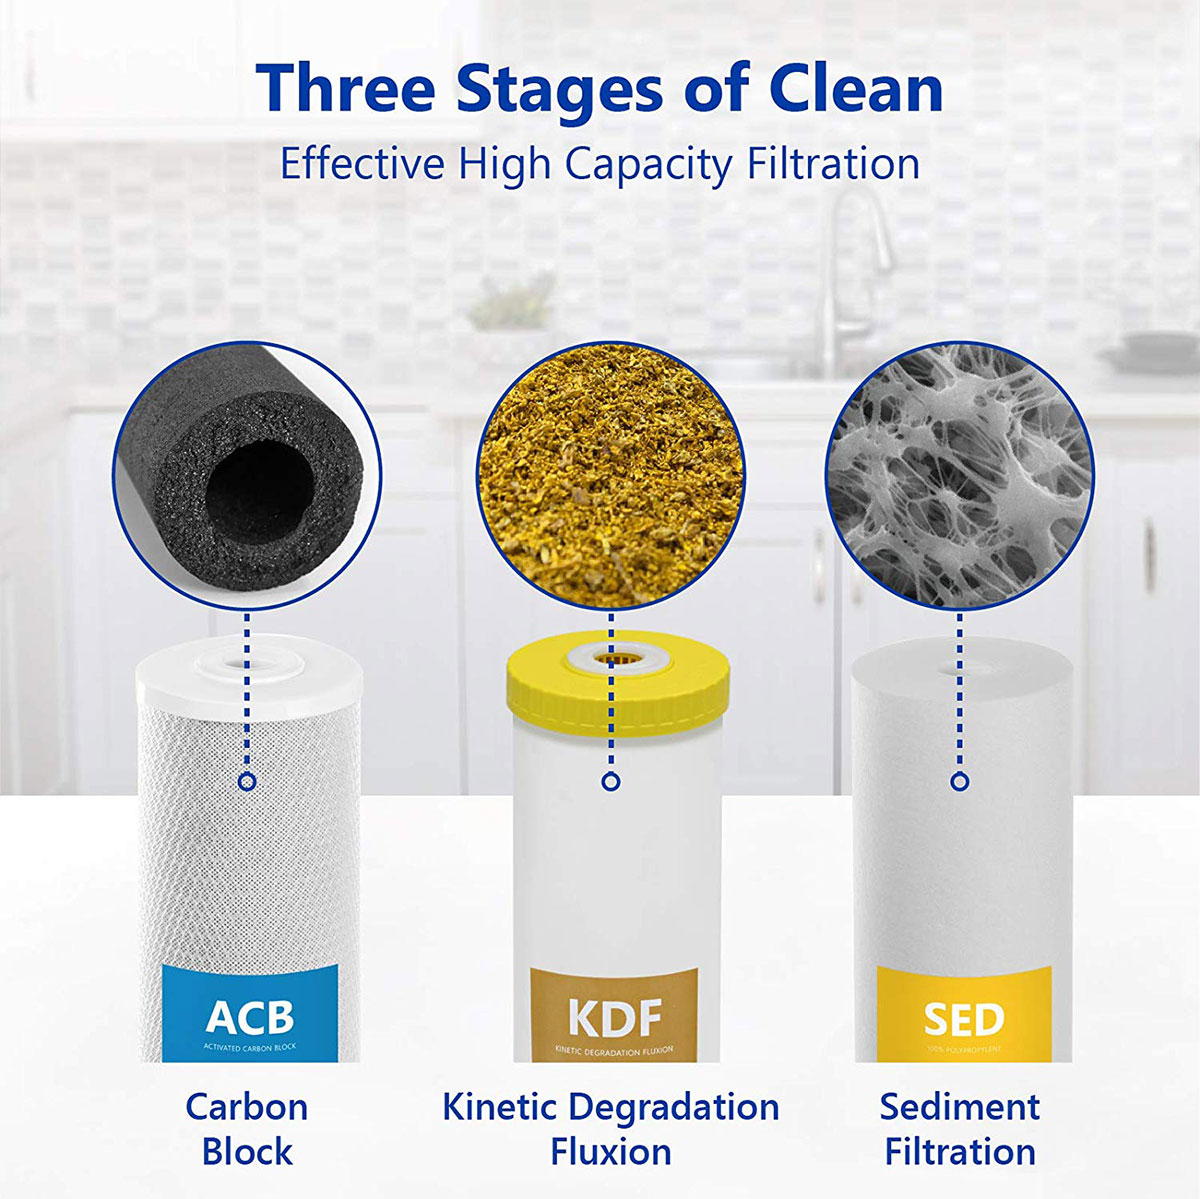 Three Stages of Clean Filtration